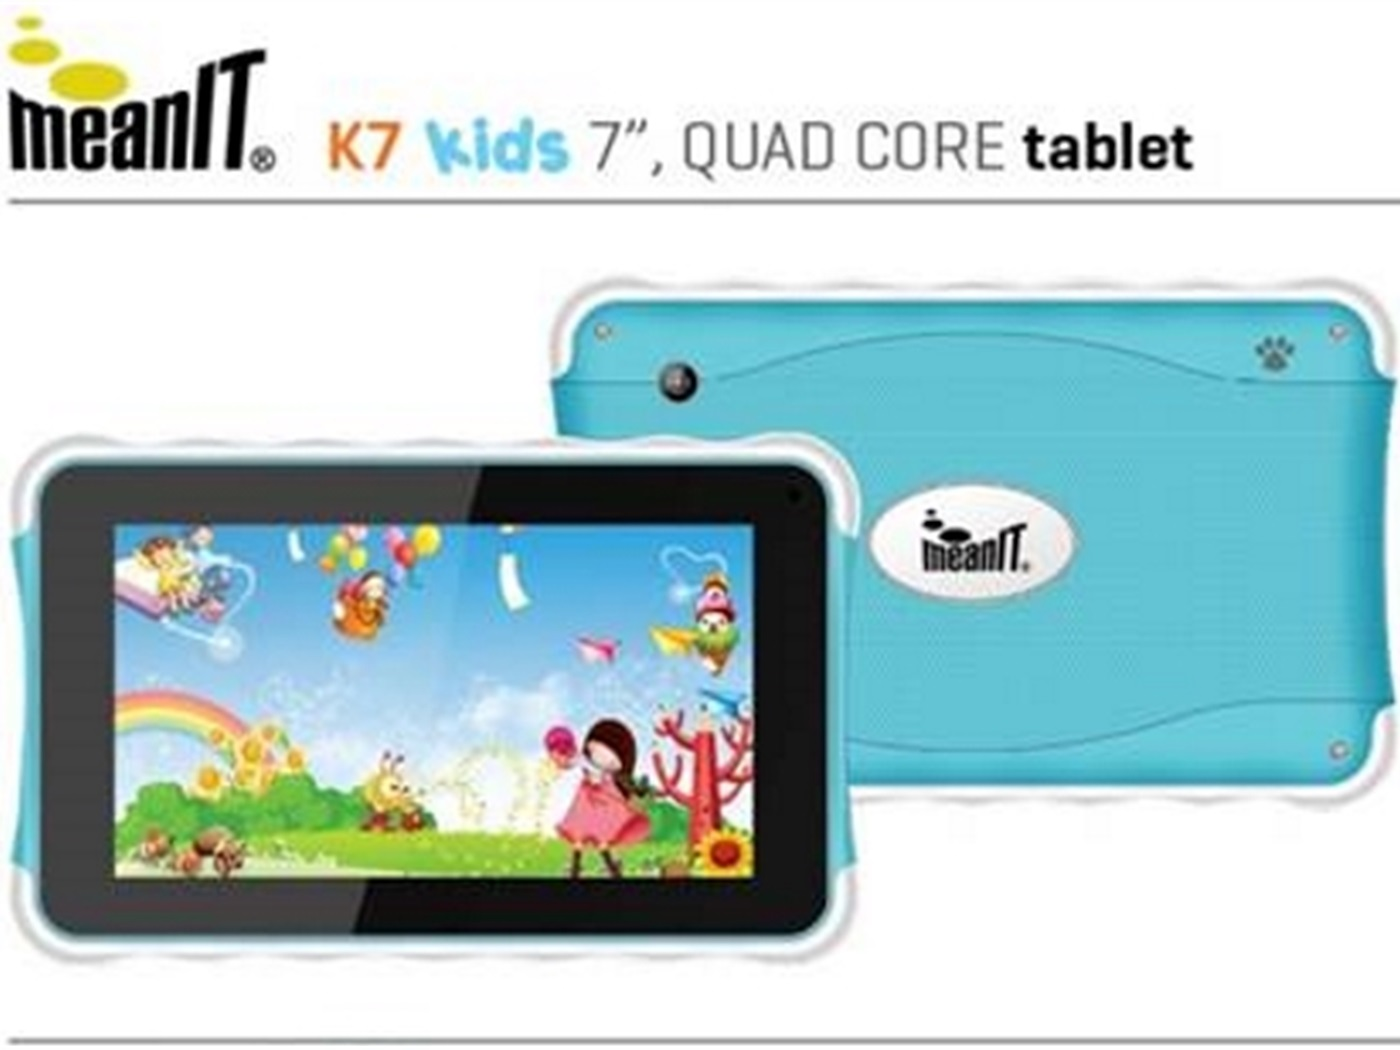 Meanit K7 dječji tablet